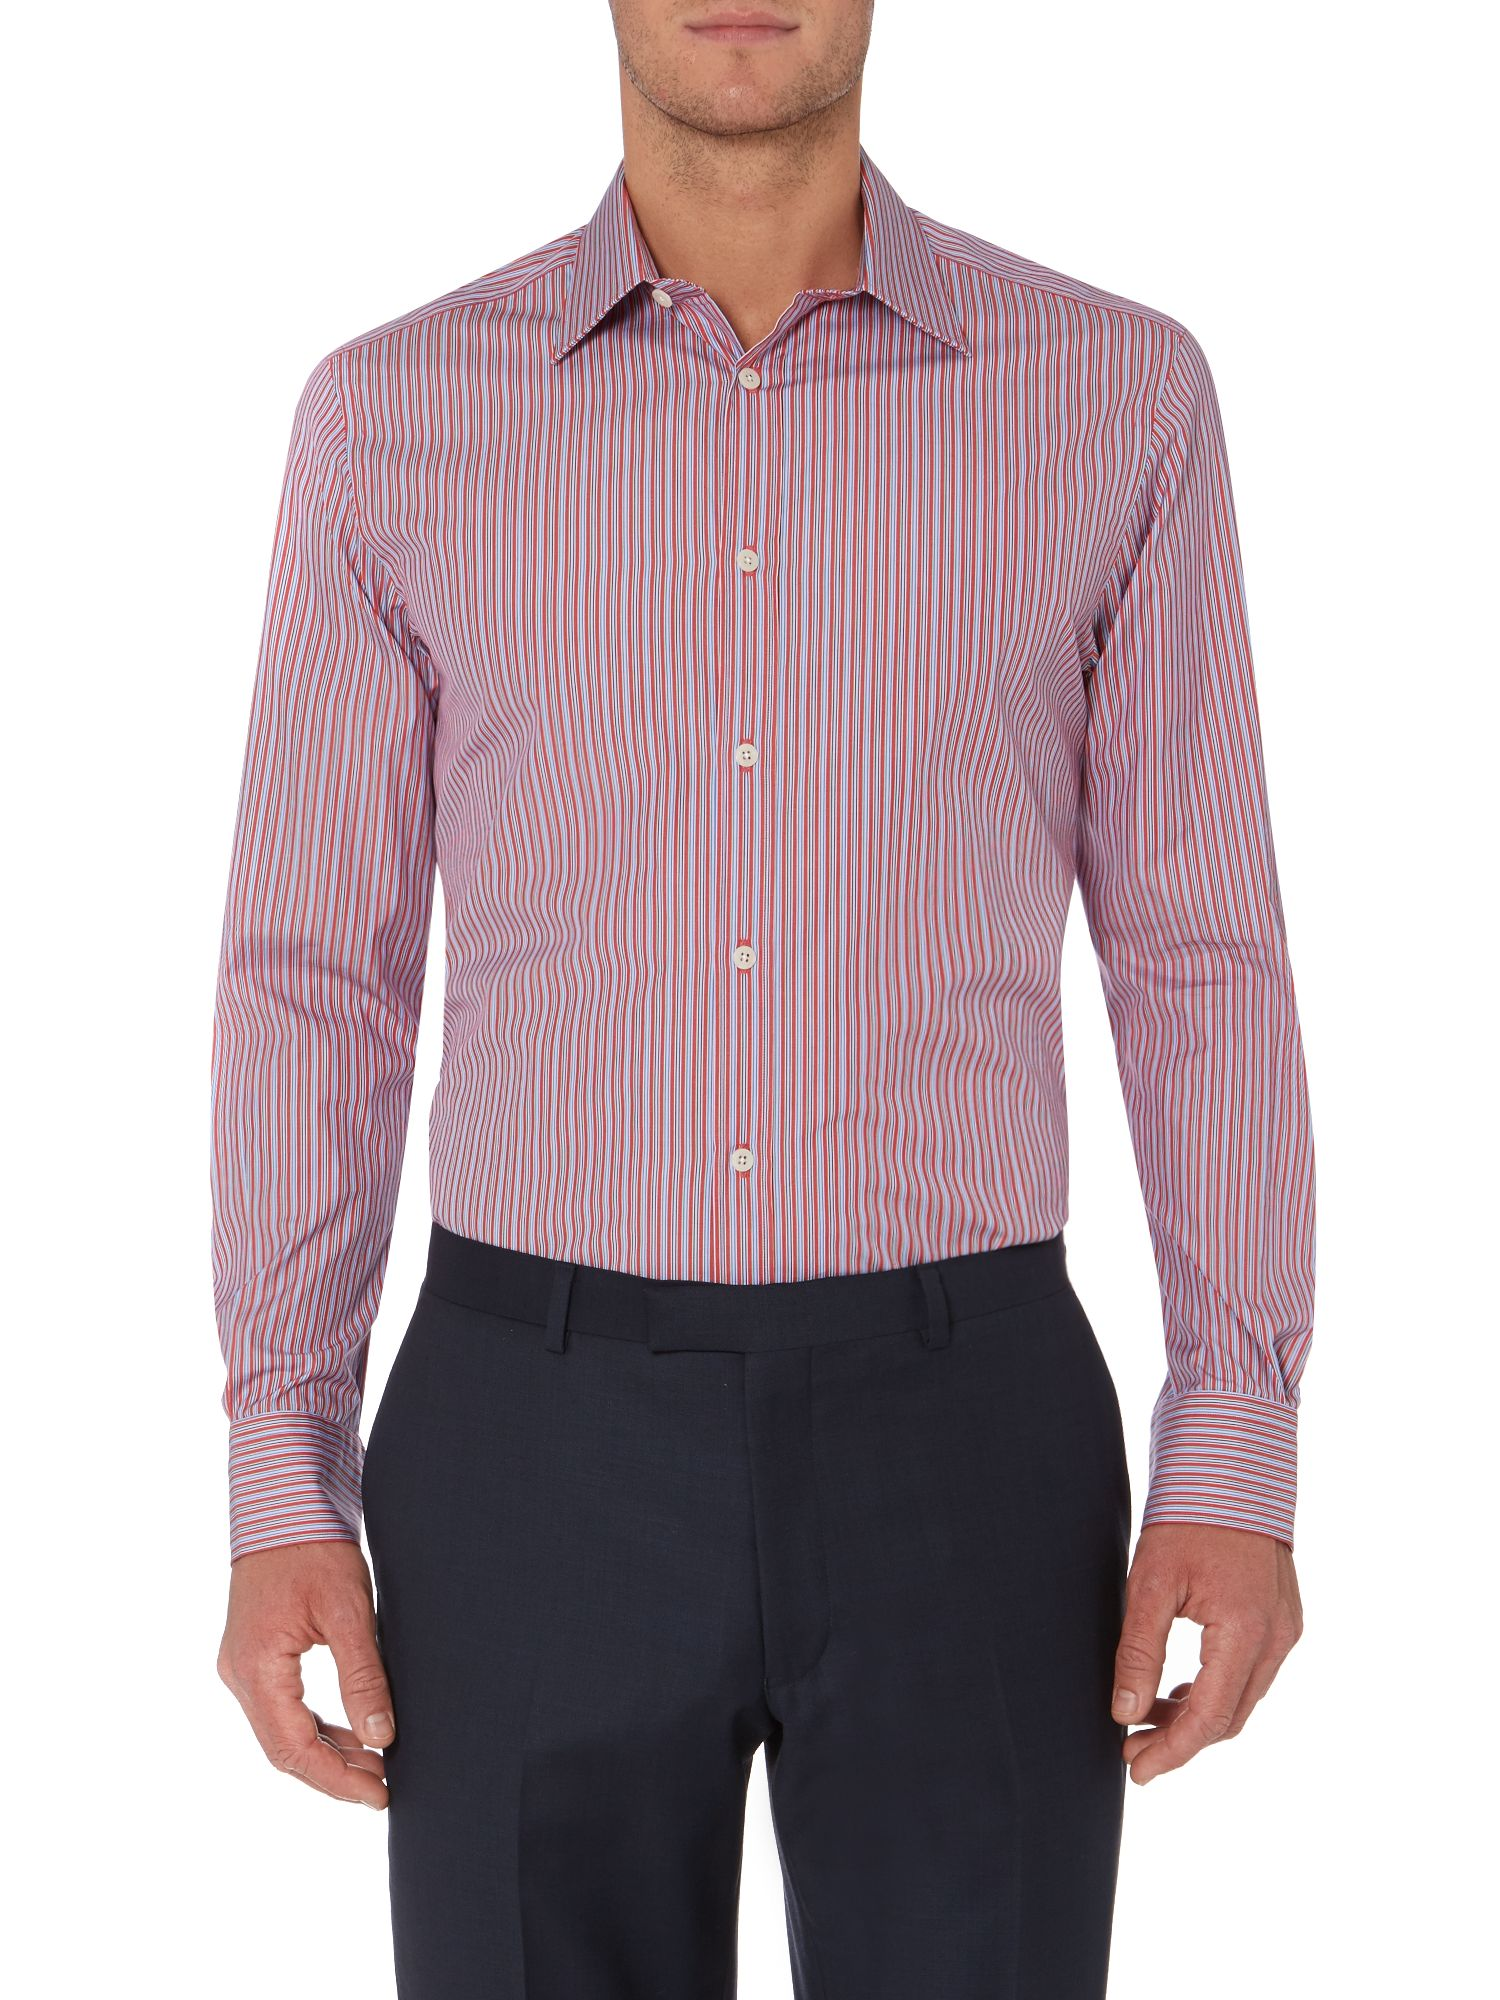 Aunby thin stripes shirt